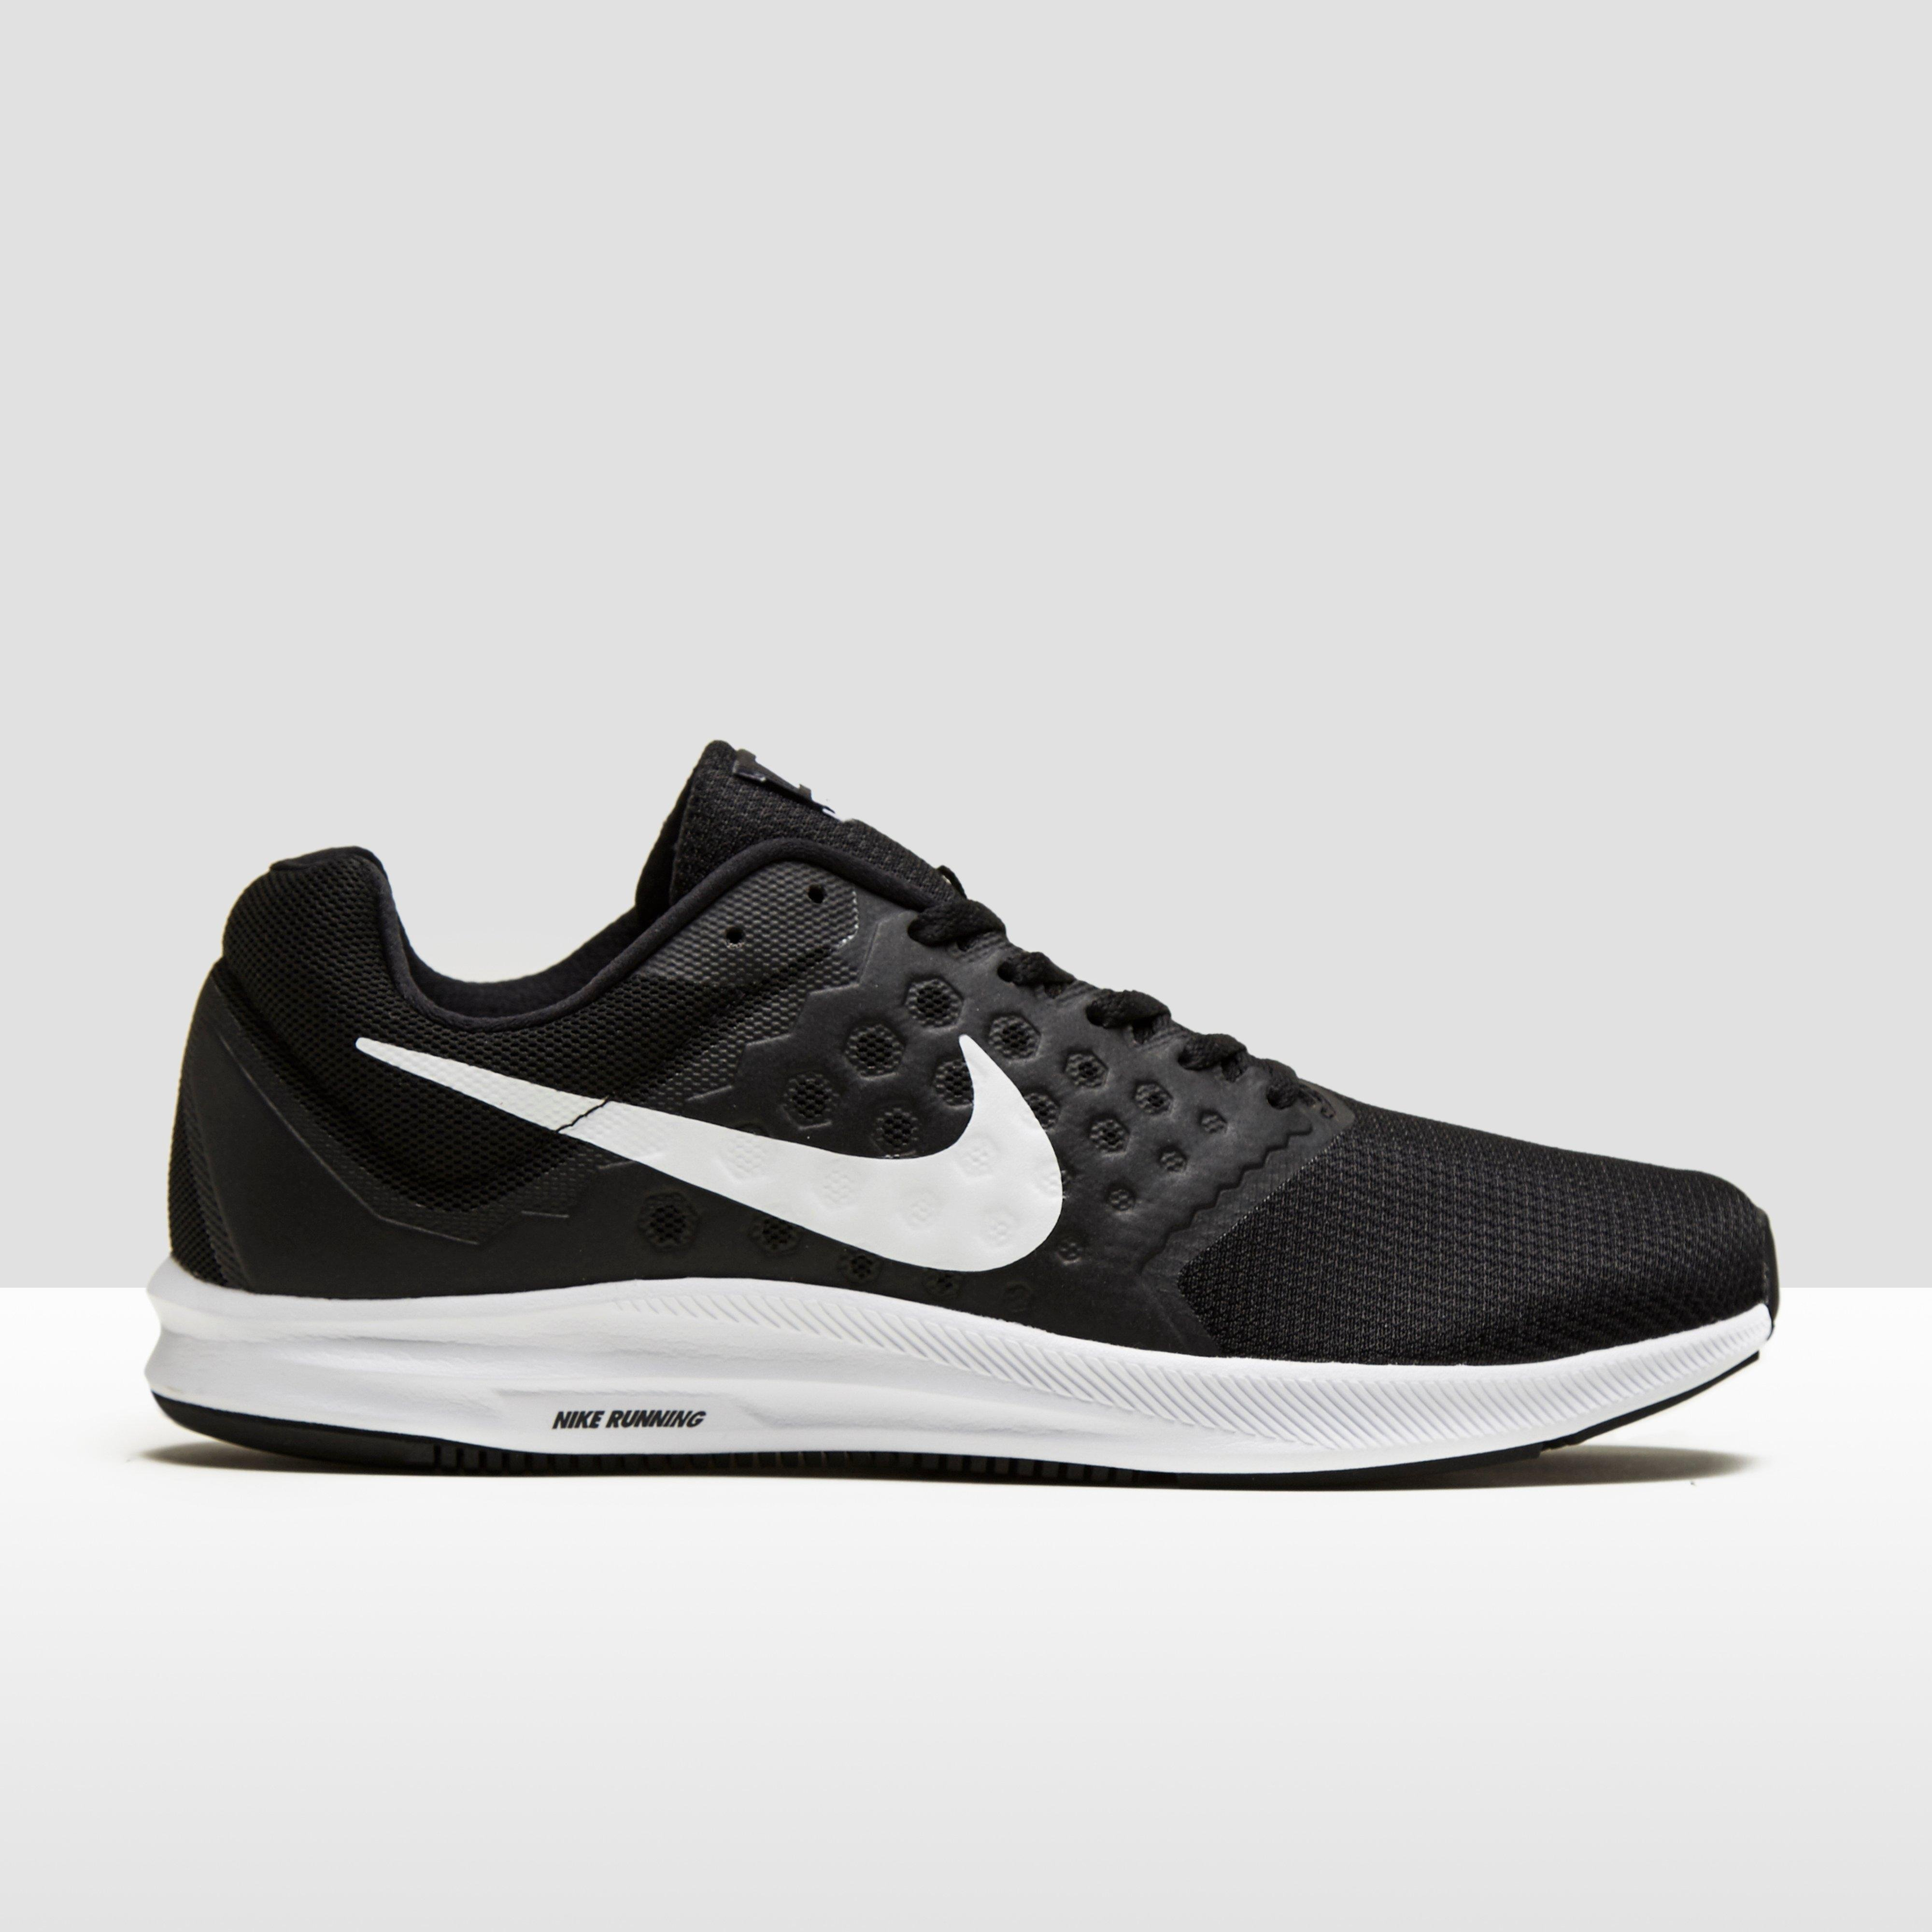 Nike Hommes Vers Le Bas Shifter 8 Chaussures De Course - Noir - 12.5 YwshVbo